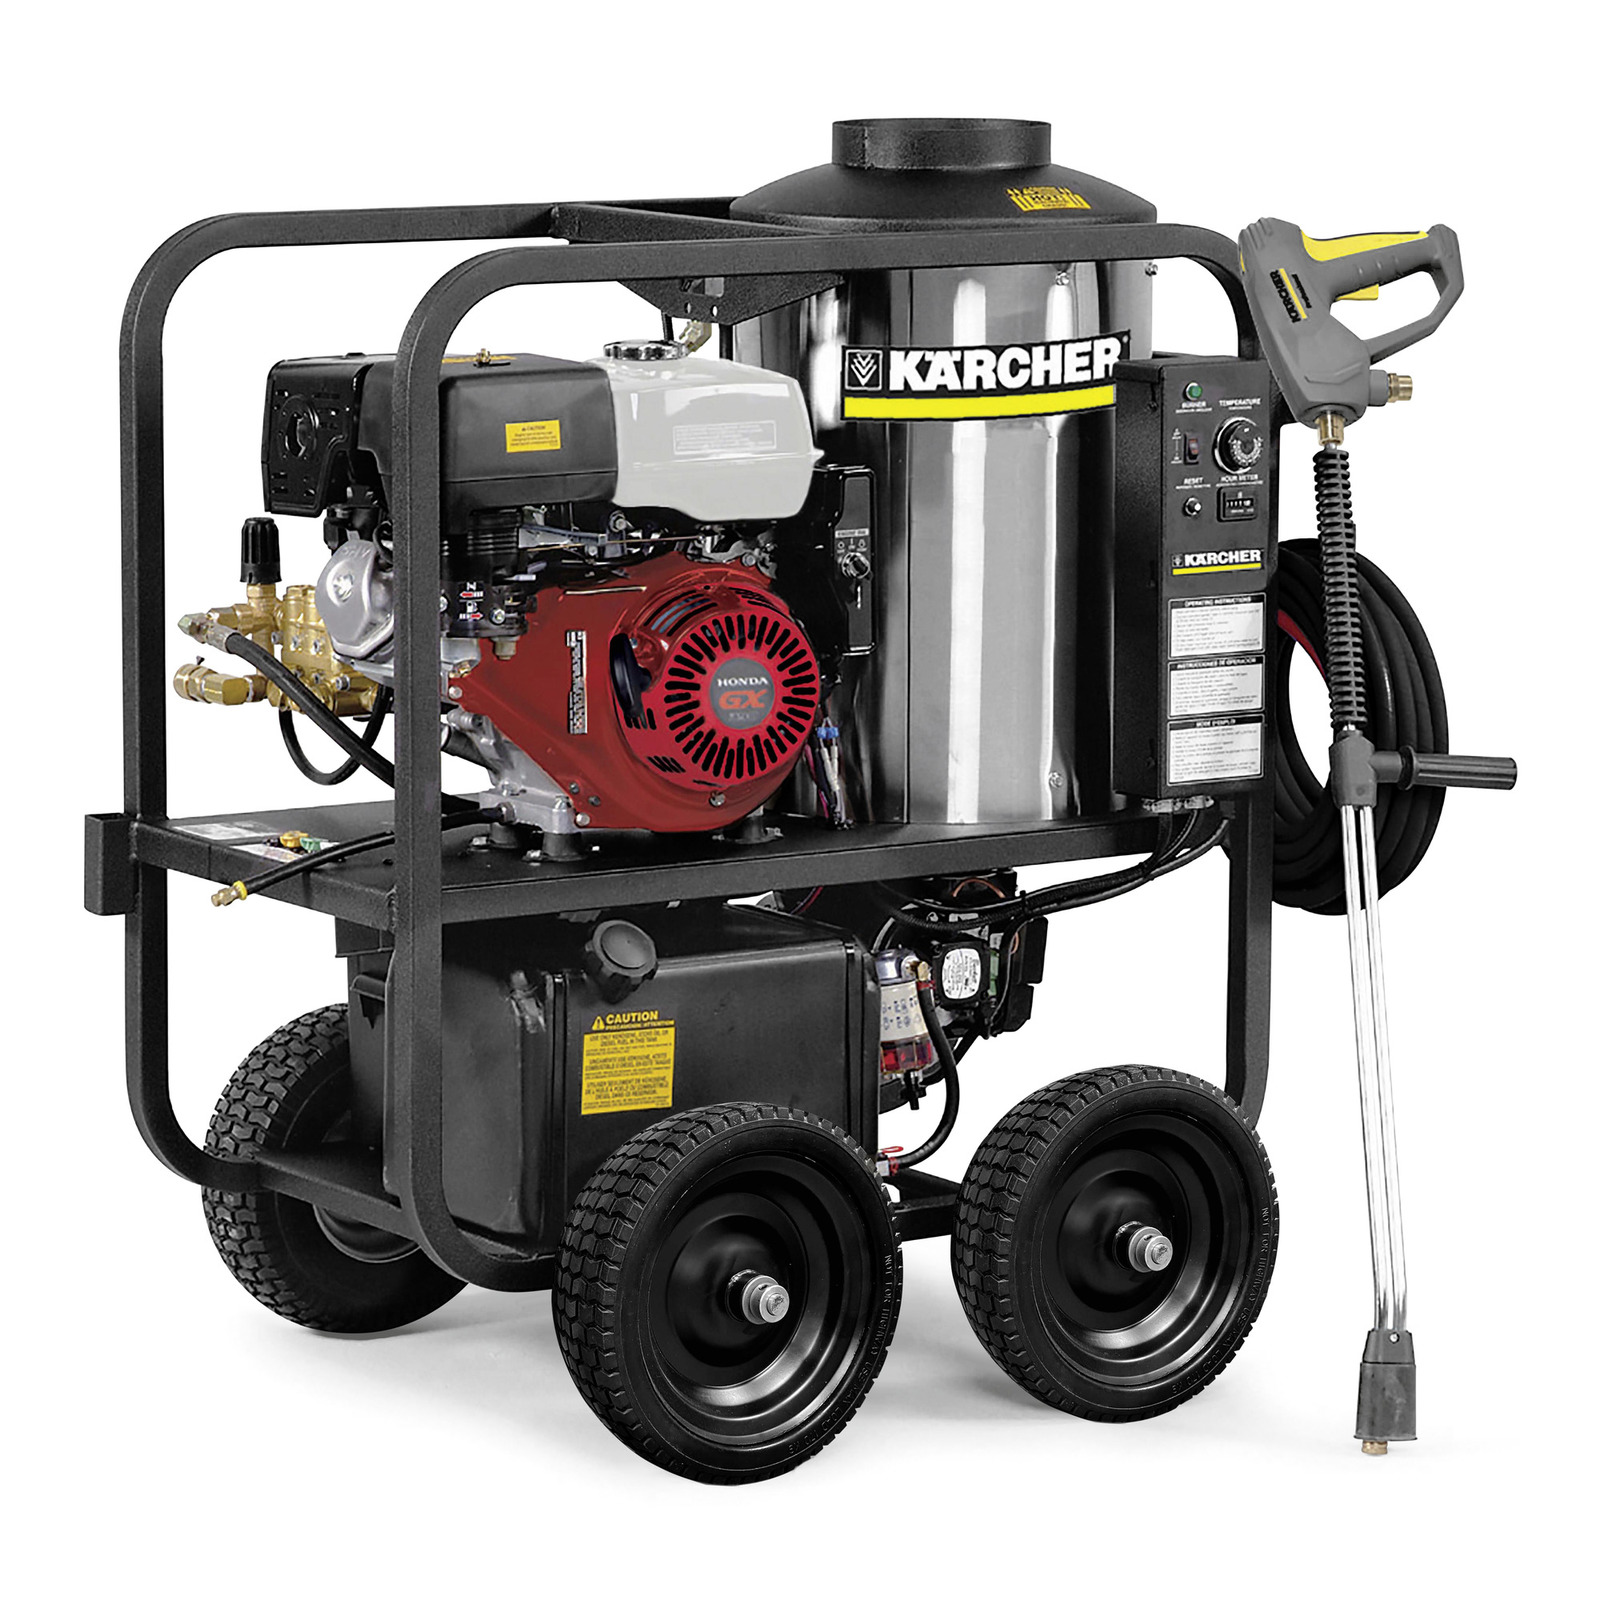 full?position=productlist&bp=md gas diesel powered hot water pressure washers karcher  at gsmportal.co